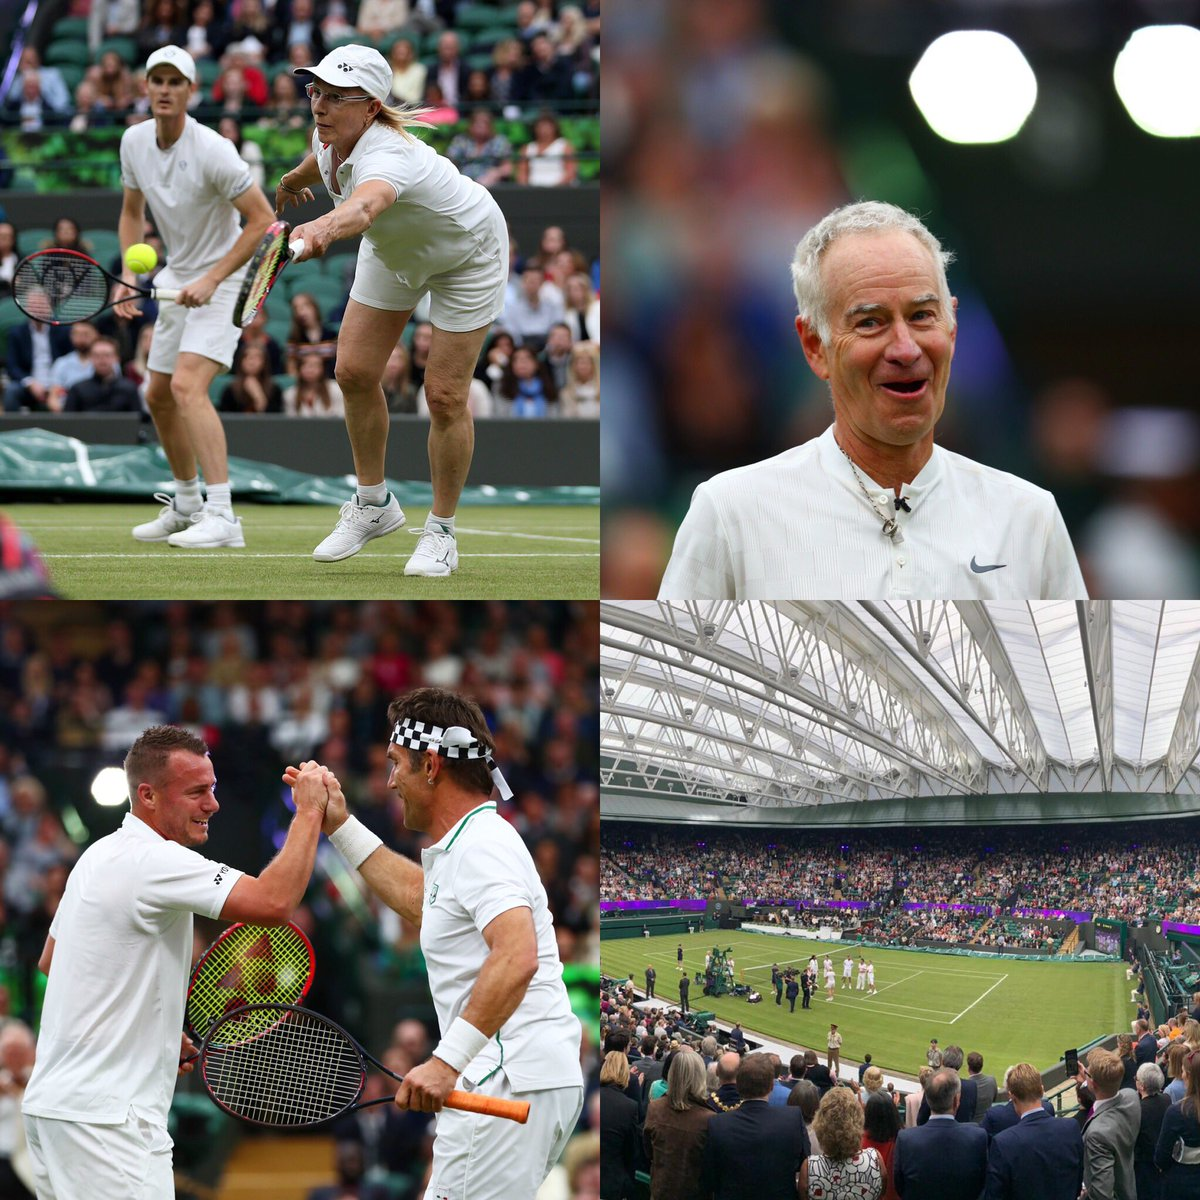 Amazing Experience to be part of the @wimbledon court 1 roof opening.  So much fun to be on court with these legends of the game! #wimbledon #tennis